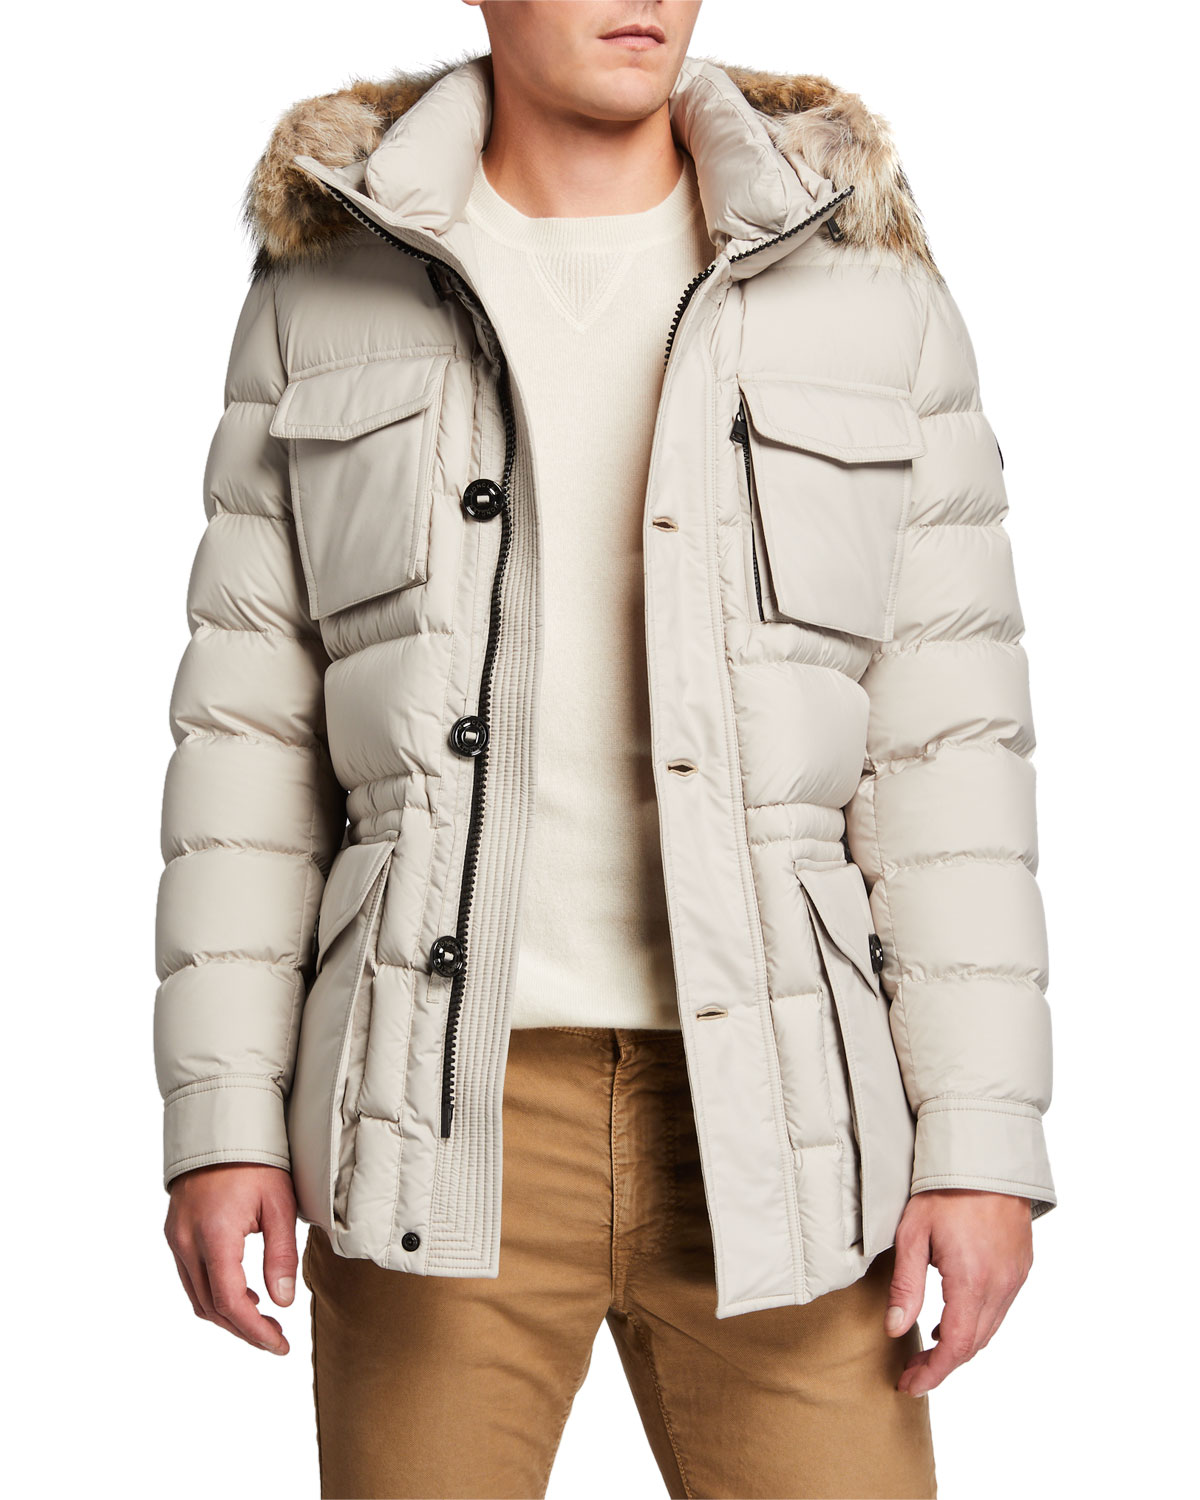 Moncler Coats MEN'S AUGERT PUFFER COAT W/ FUR TRIM